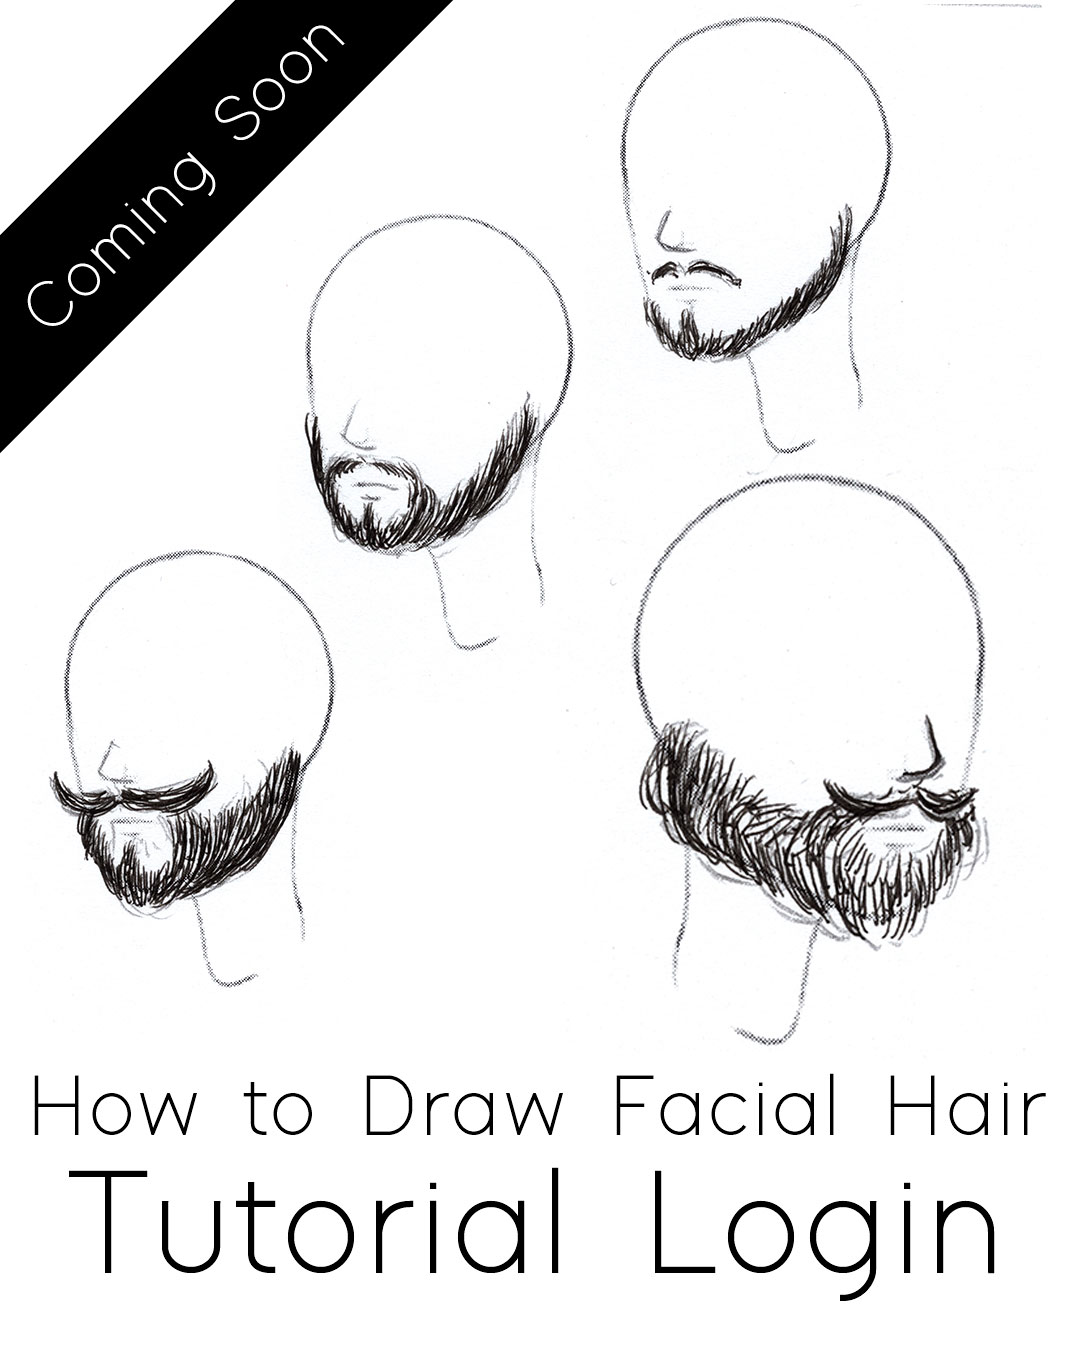 How to Draw  Facial Hair Tutorial, Step by Step Process for drawing beards & mustaches from imagination #tutorial #drawing #faces